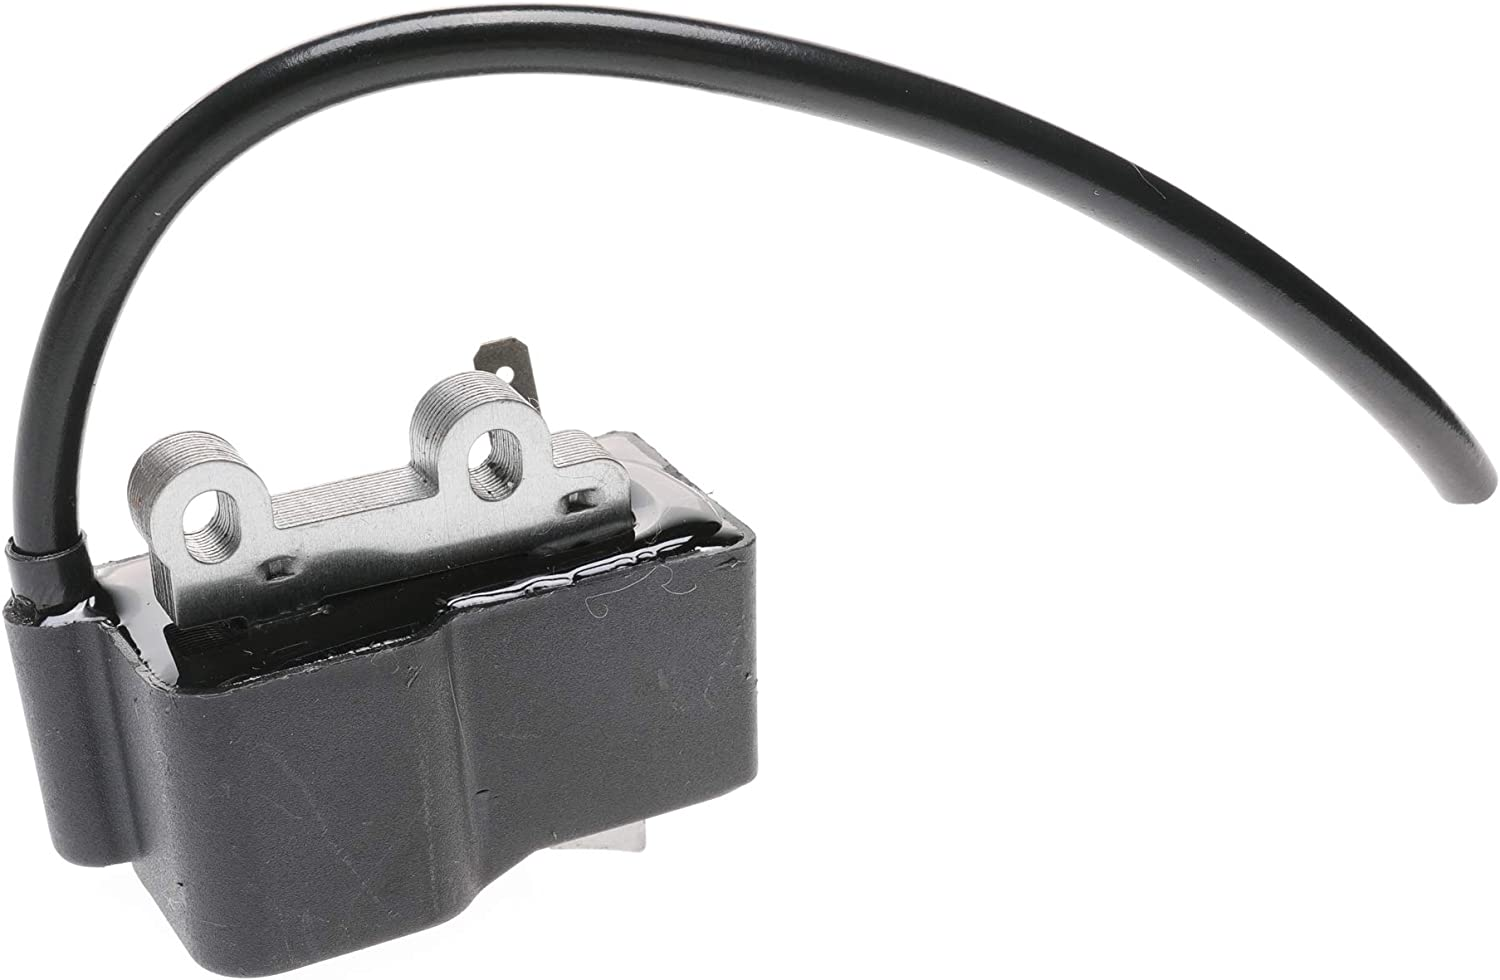 Ignition Coil For Echo ES-250 PB-250 PB-250LN Blower A411000501,A411000500